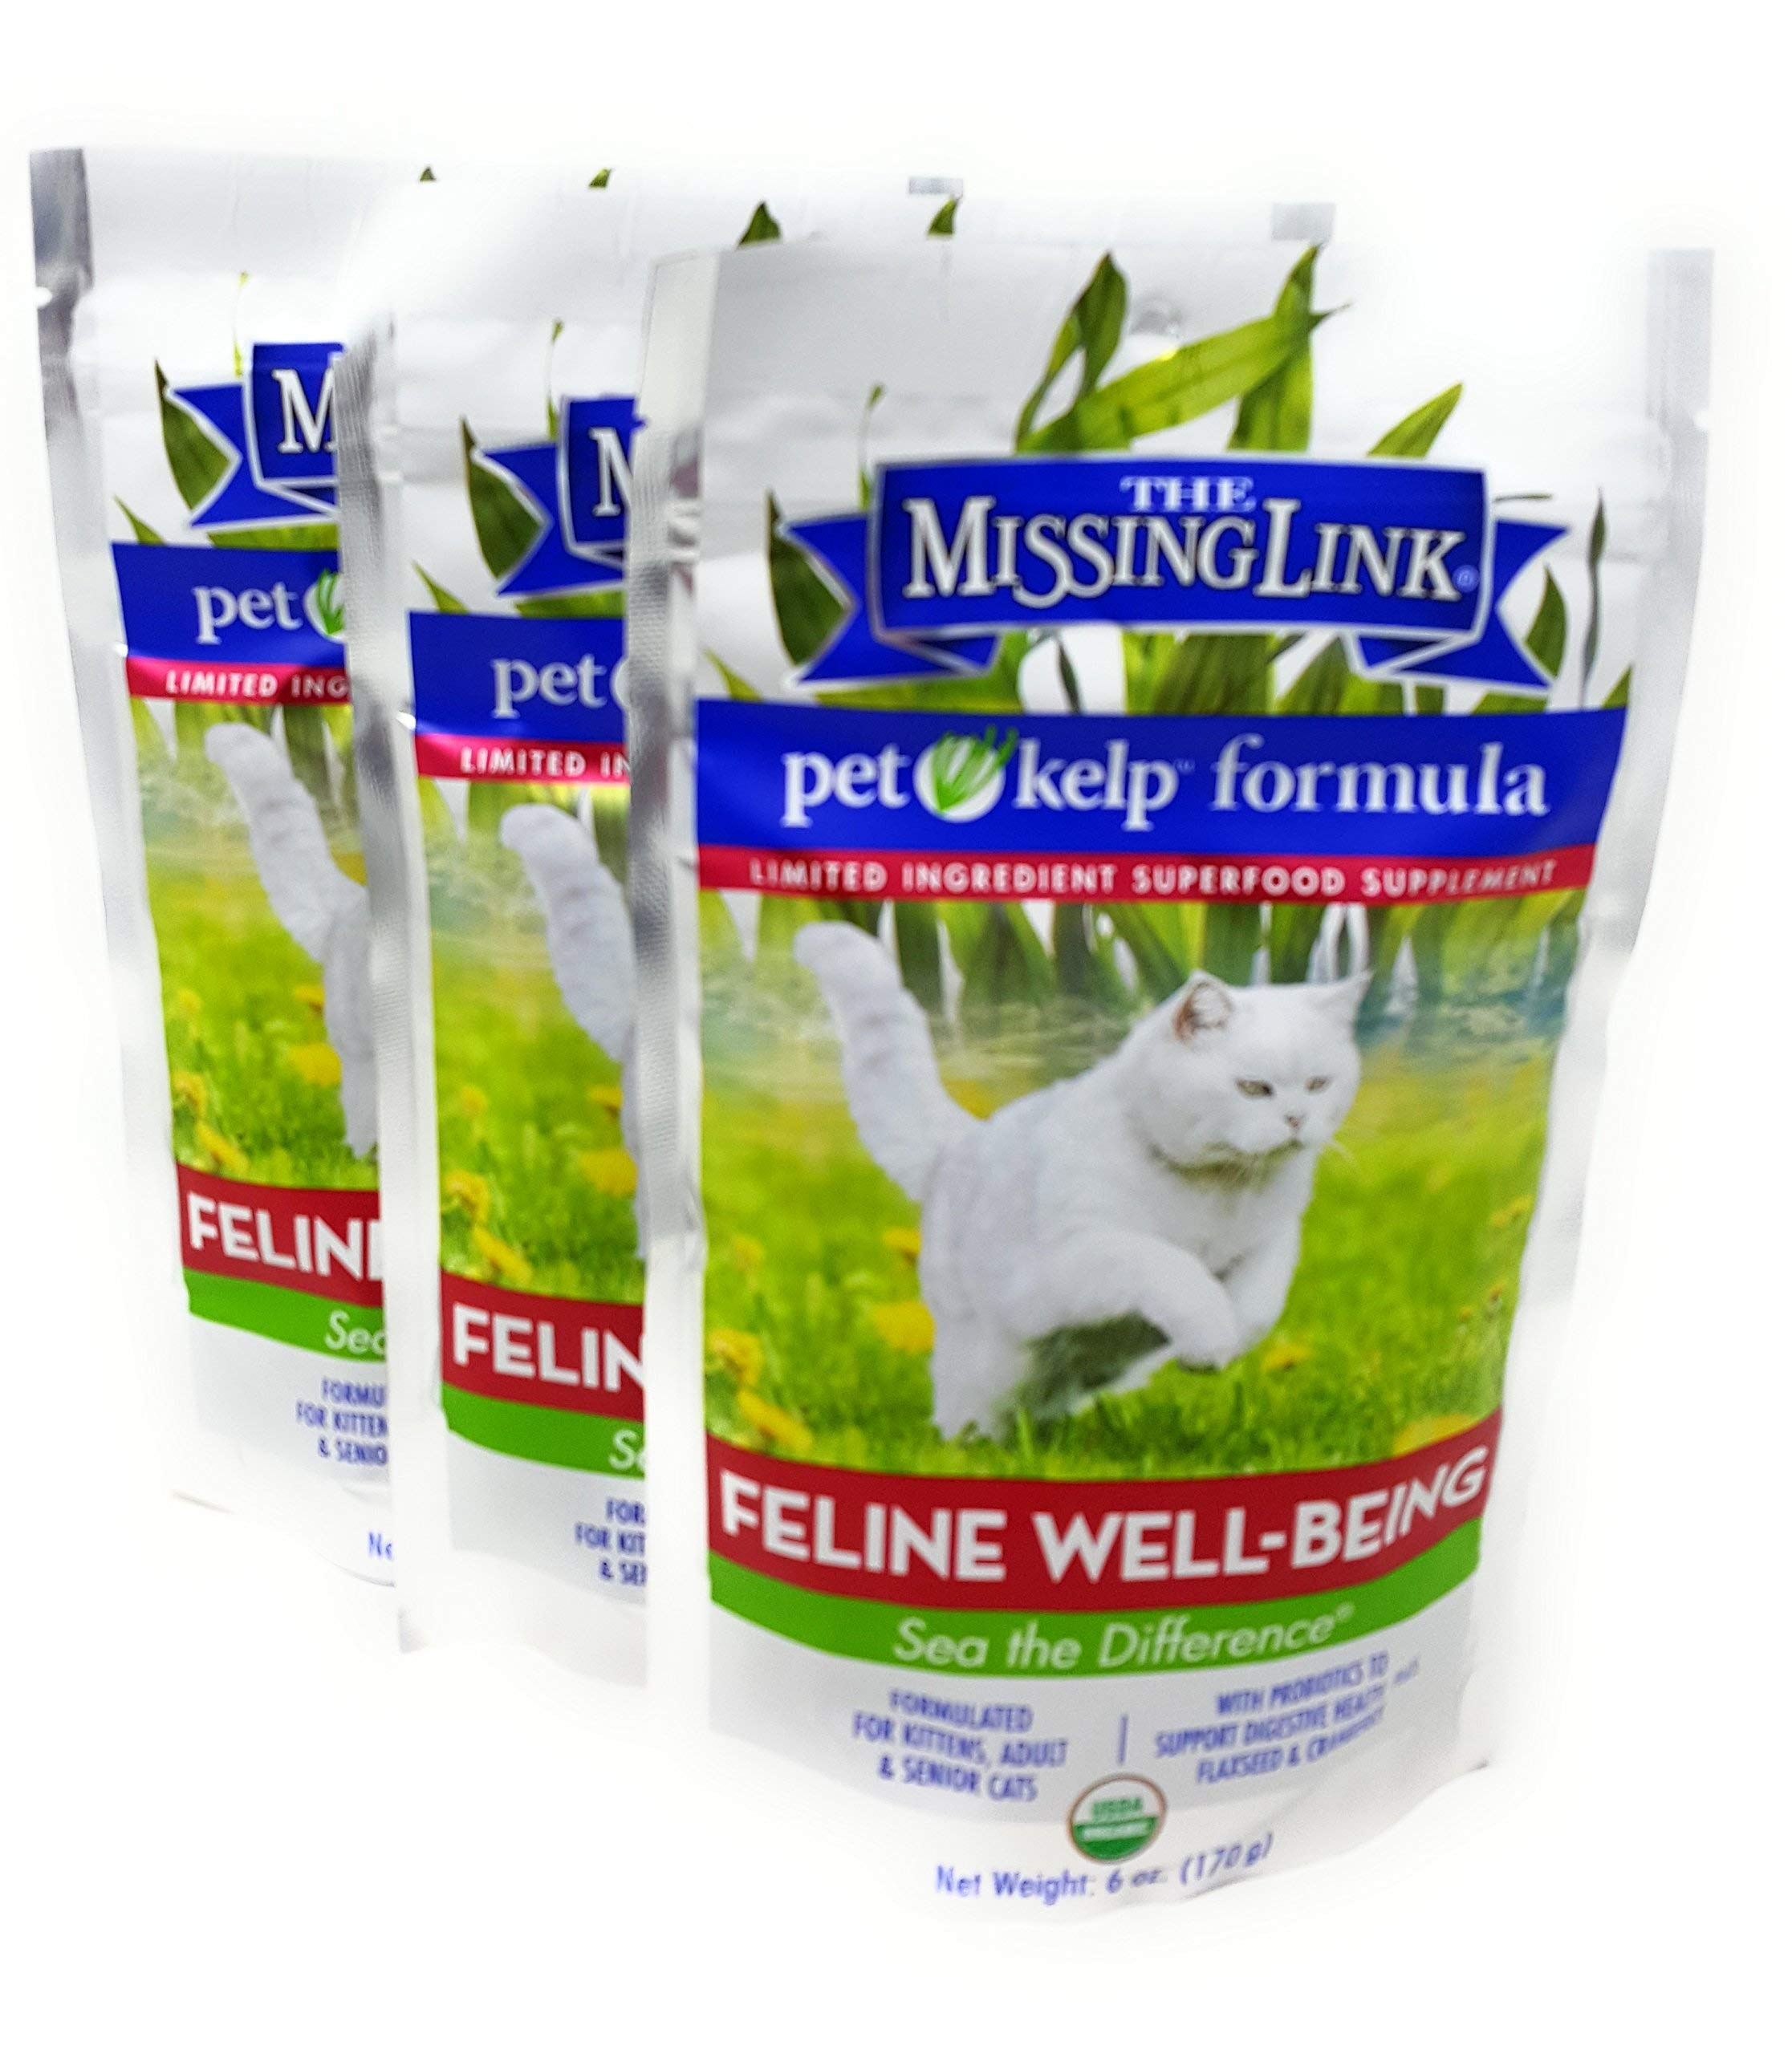 The Missing Link Pet Kelp Formula - Feline Well-Being - Limited Ingredient Superfood Supplement For Cats (3 Pack) by Pet Kelp